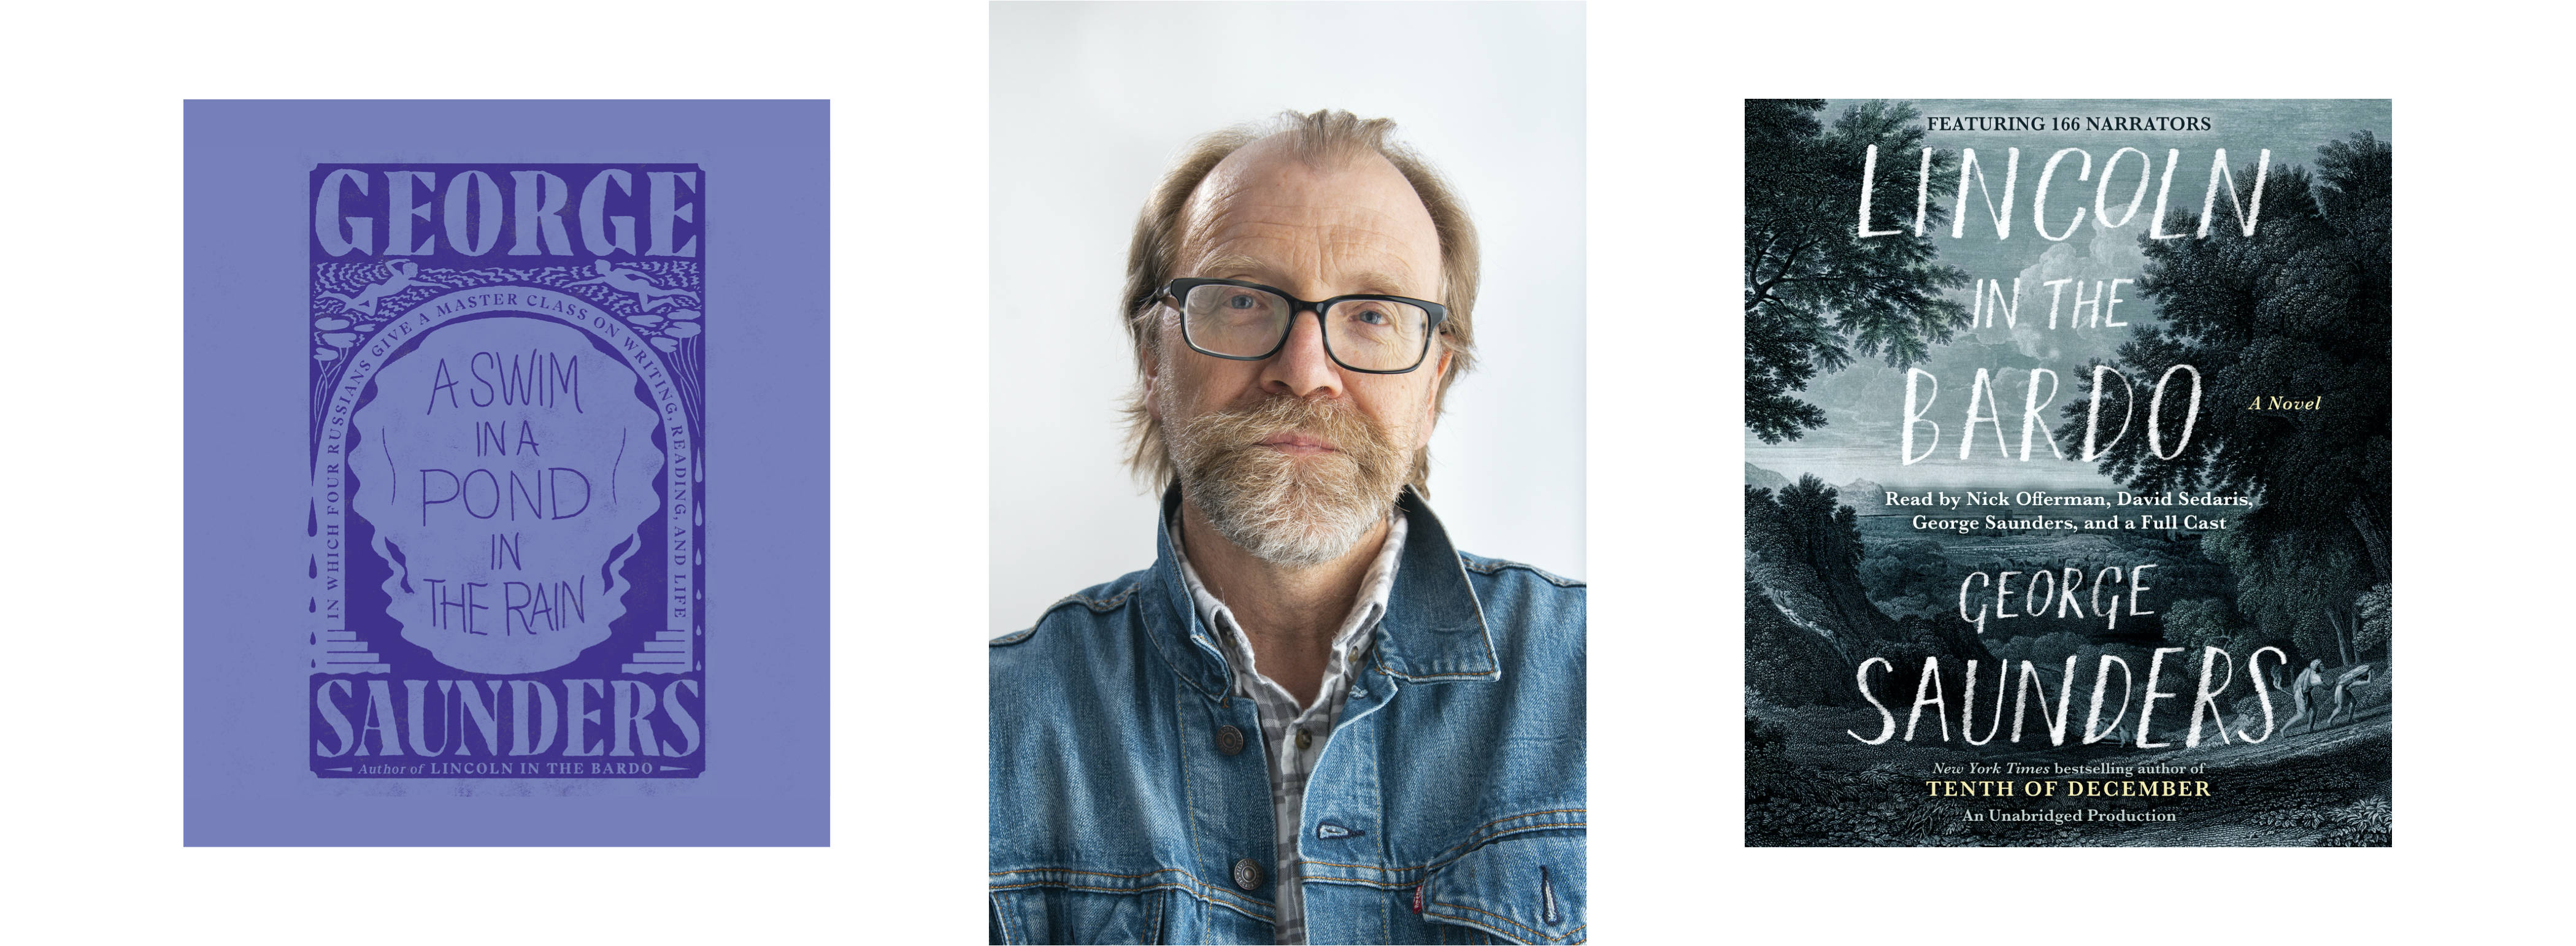 Author and narrator George Saunders (Photo by Zach Krahmer/Penguin Random House Audio)